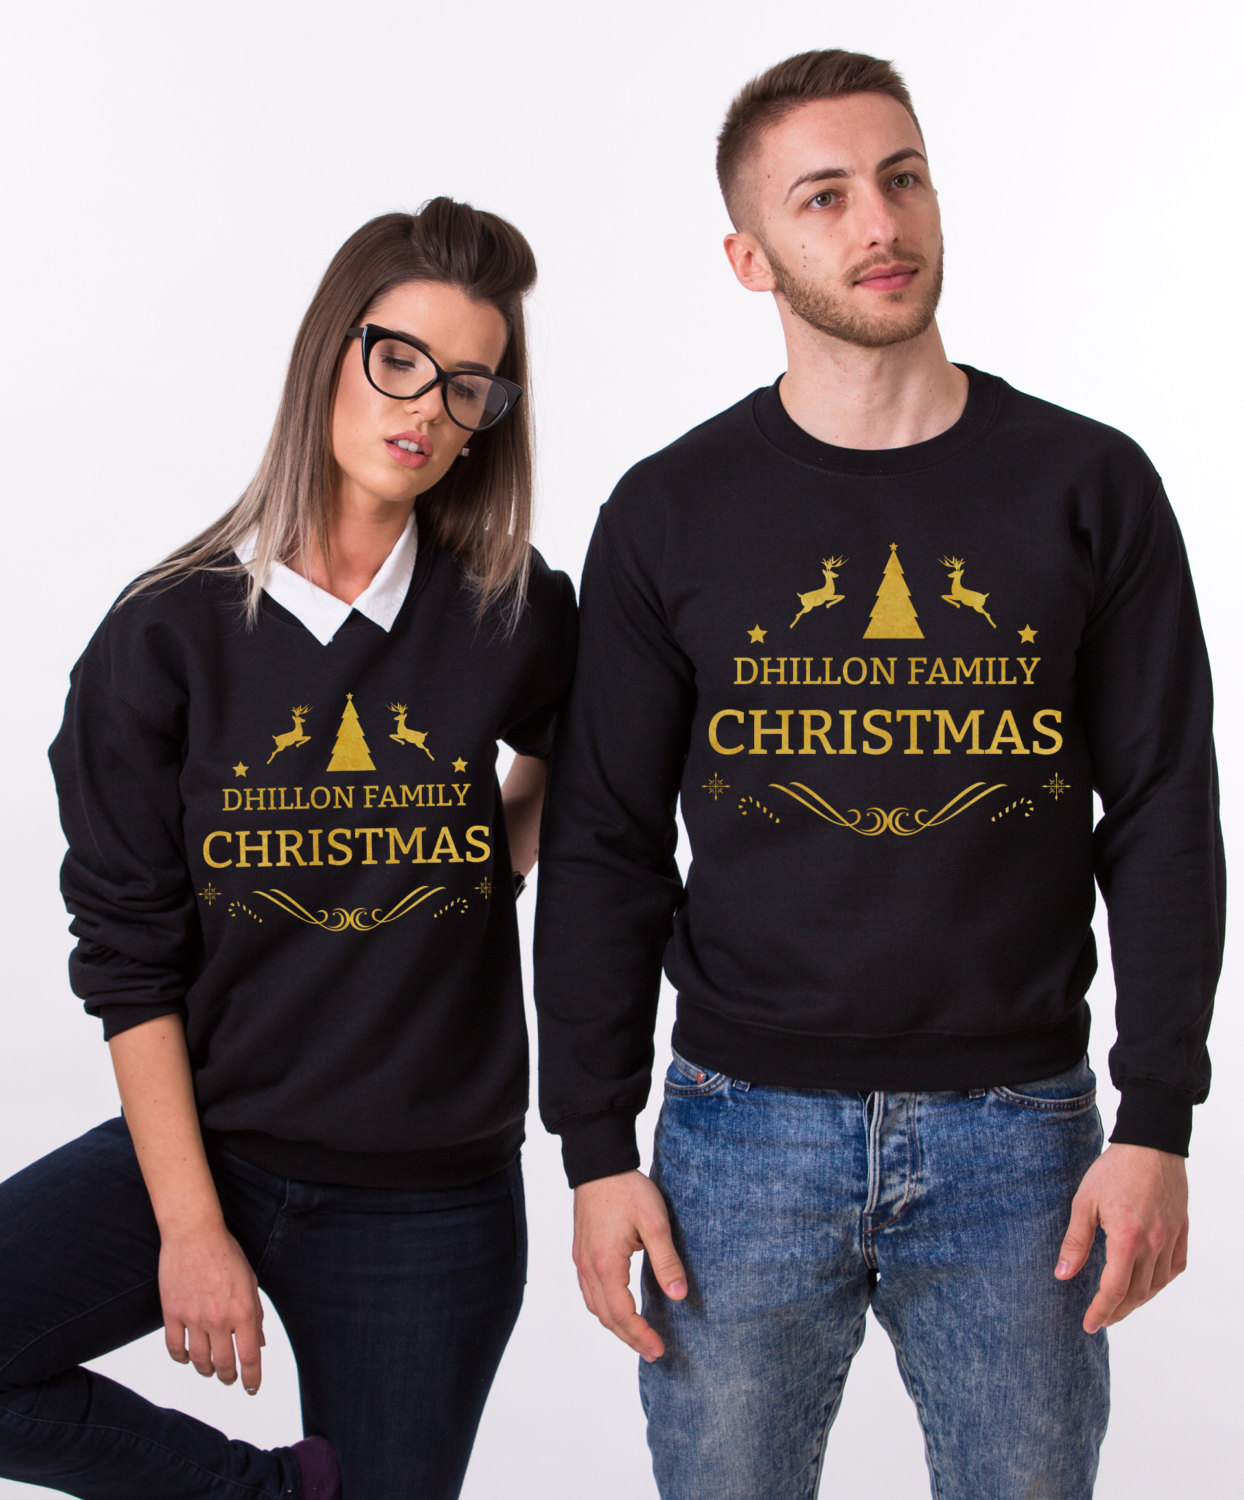 Custom Name Matching Family Christmas Sweatshirts Awesome Matching Shirts For Couples Families And Friends By Epic Tees